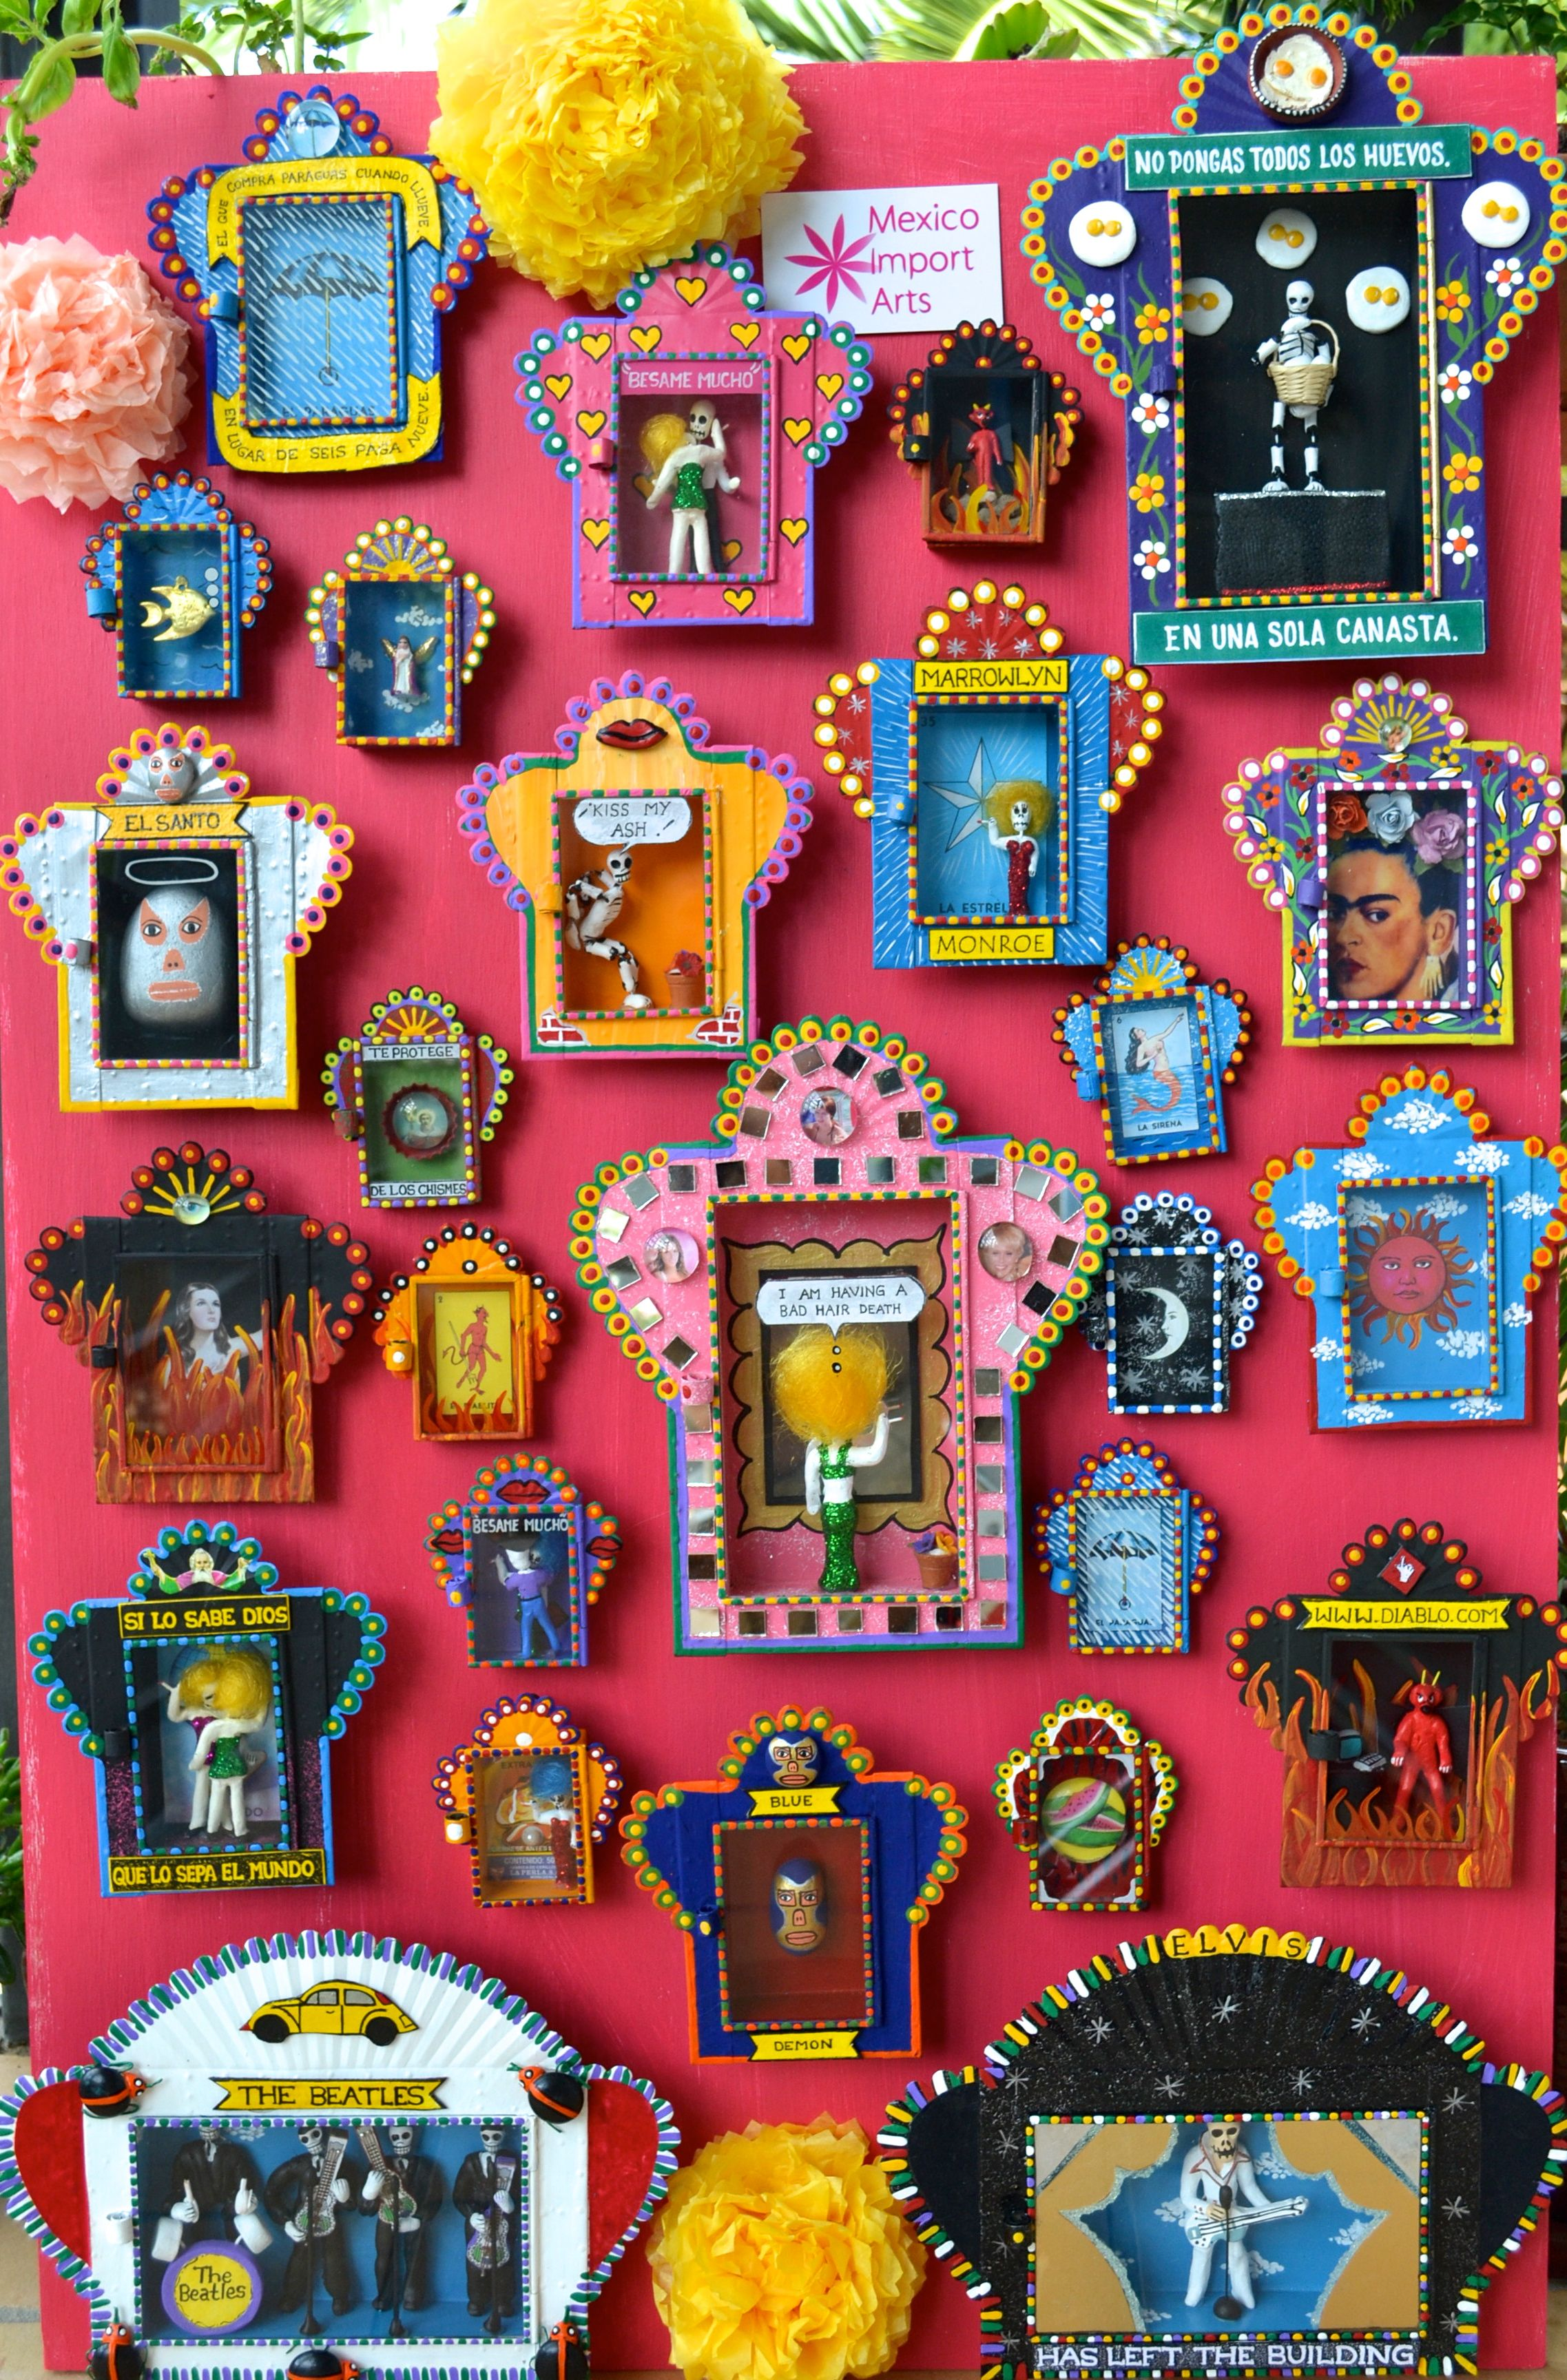 Dig the Mexican altar boxes  Dead kitsch cool - Sold at